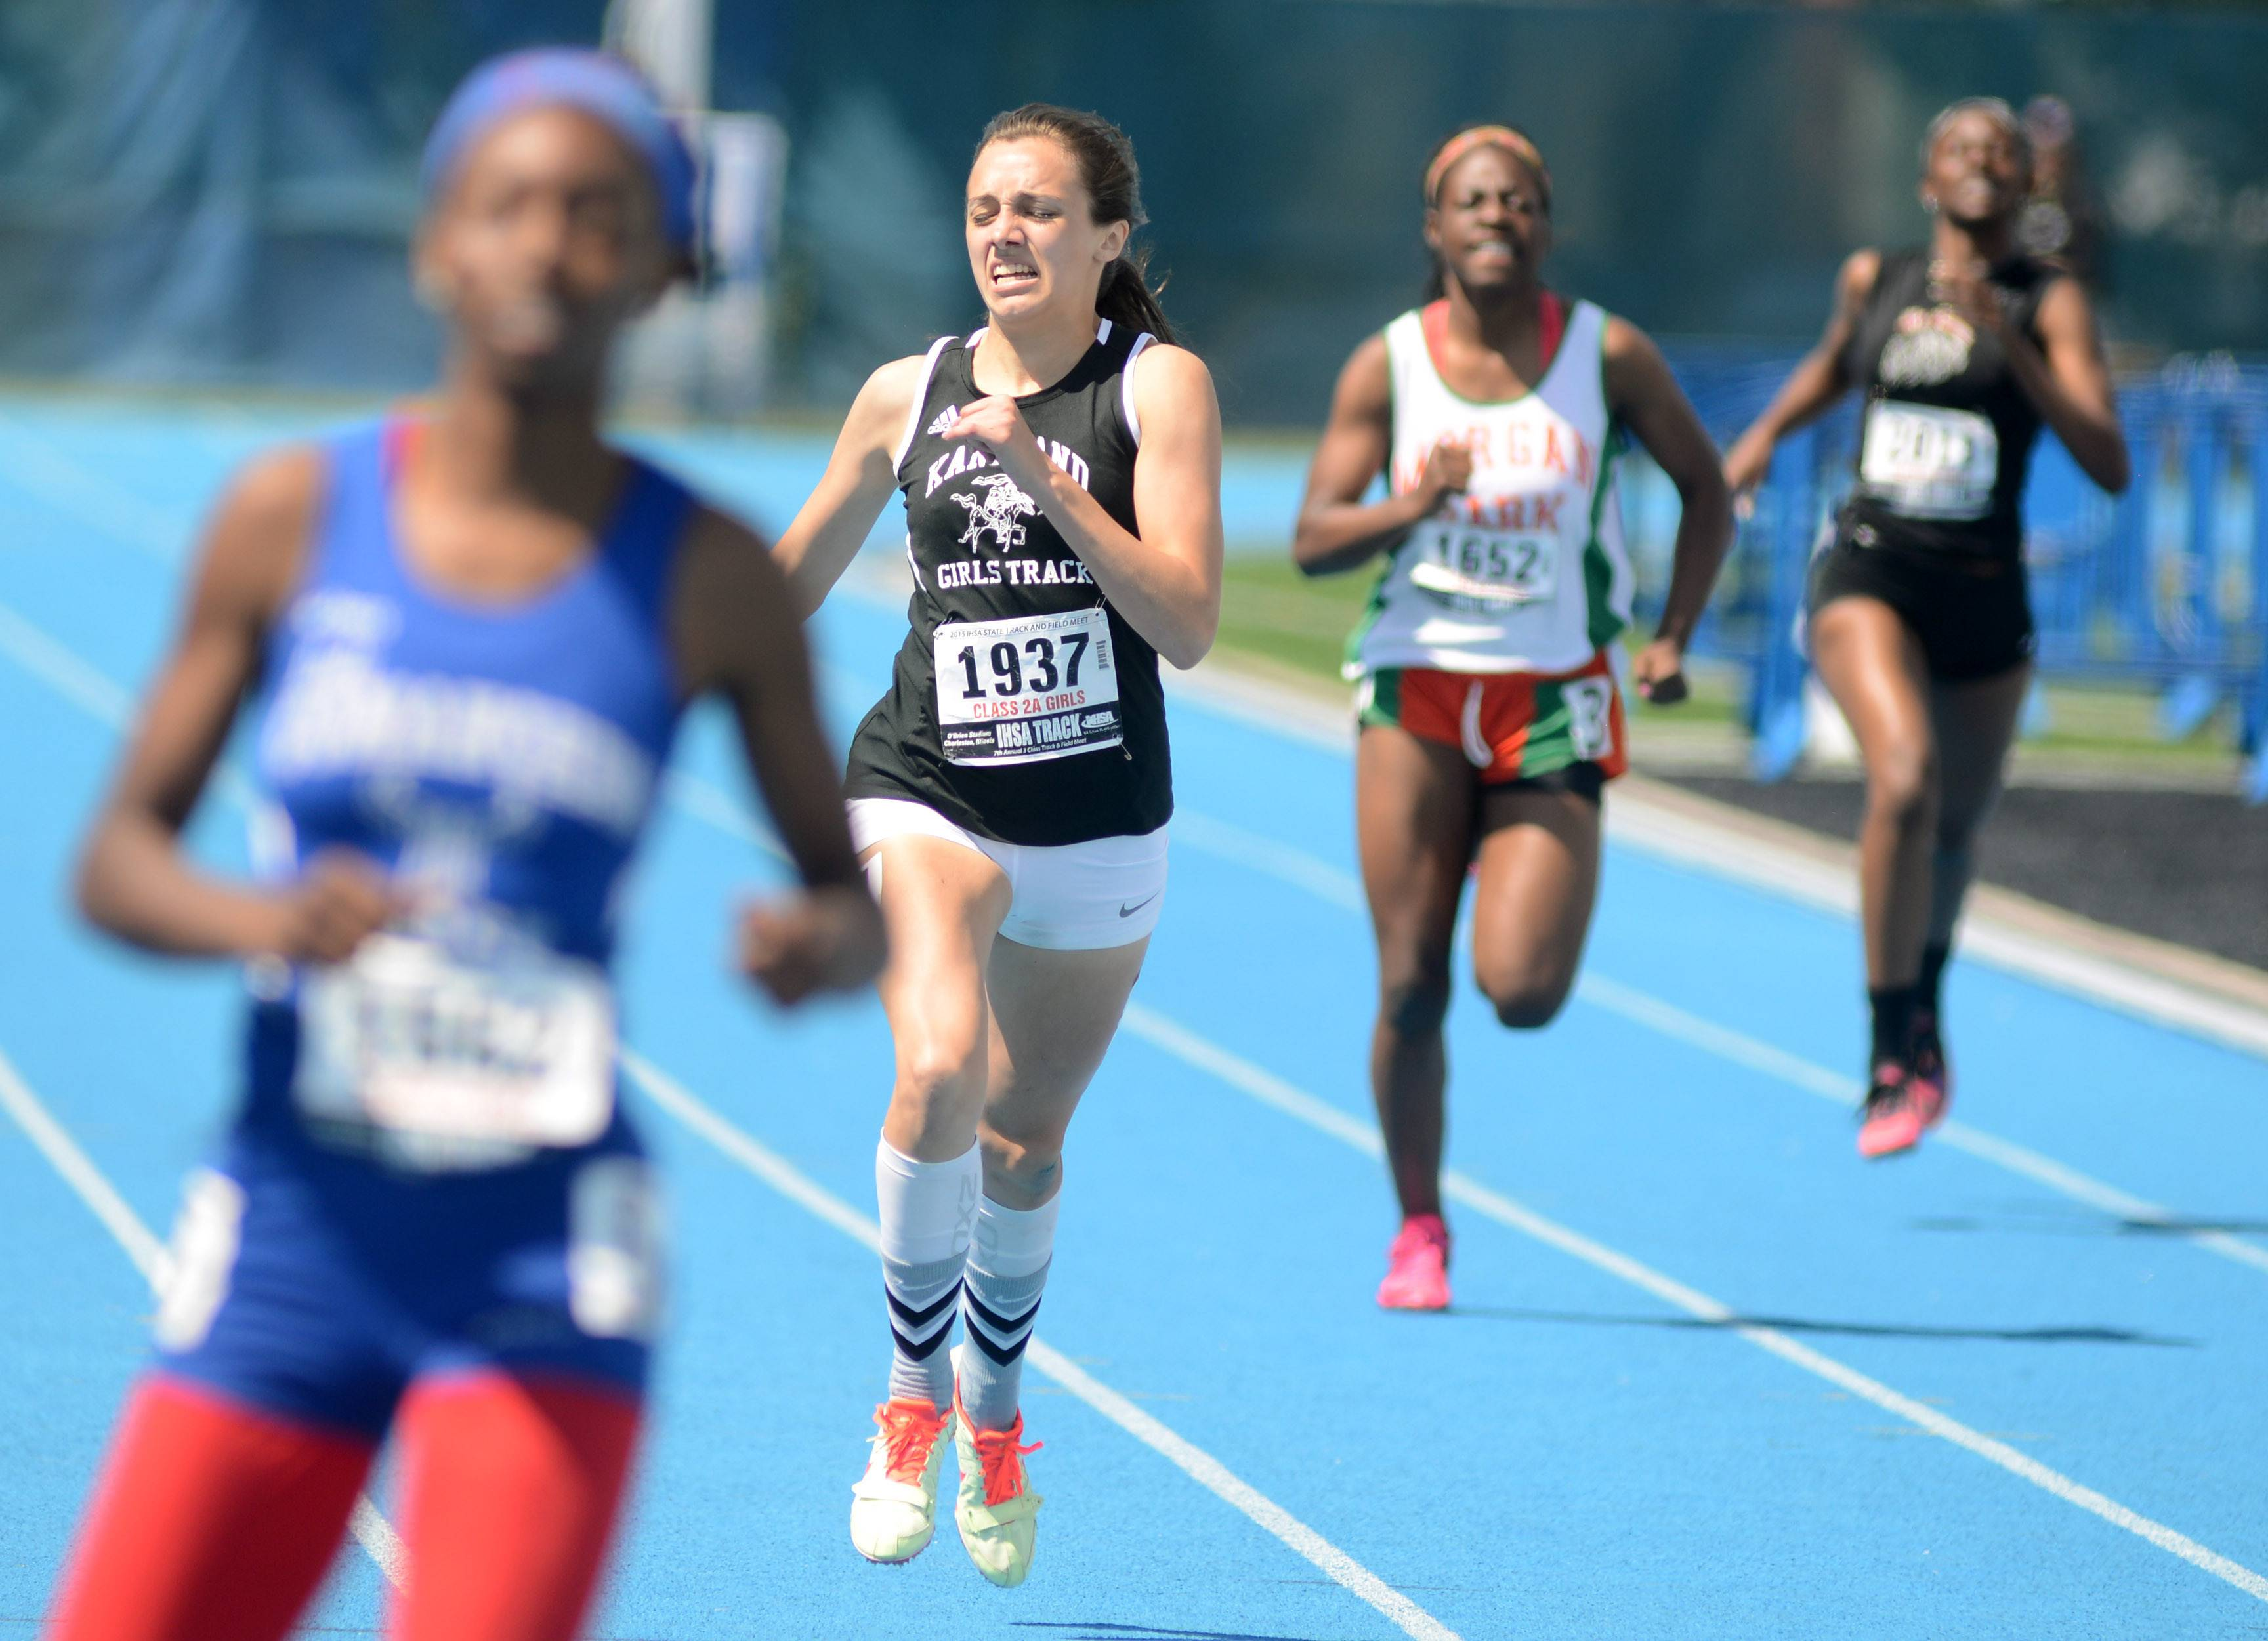 Kaneland's Allie Heinzer takes third place in the 400-meter dash in the IHSA Class 2A state finals.